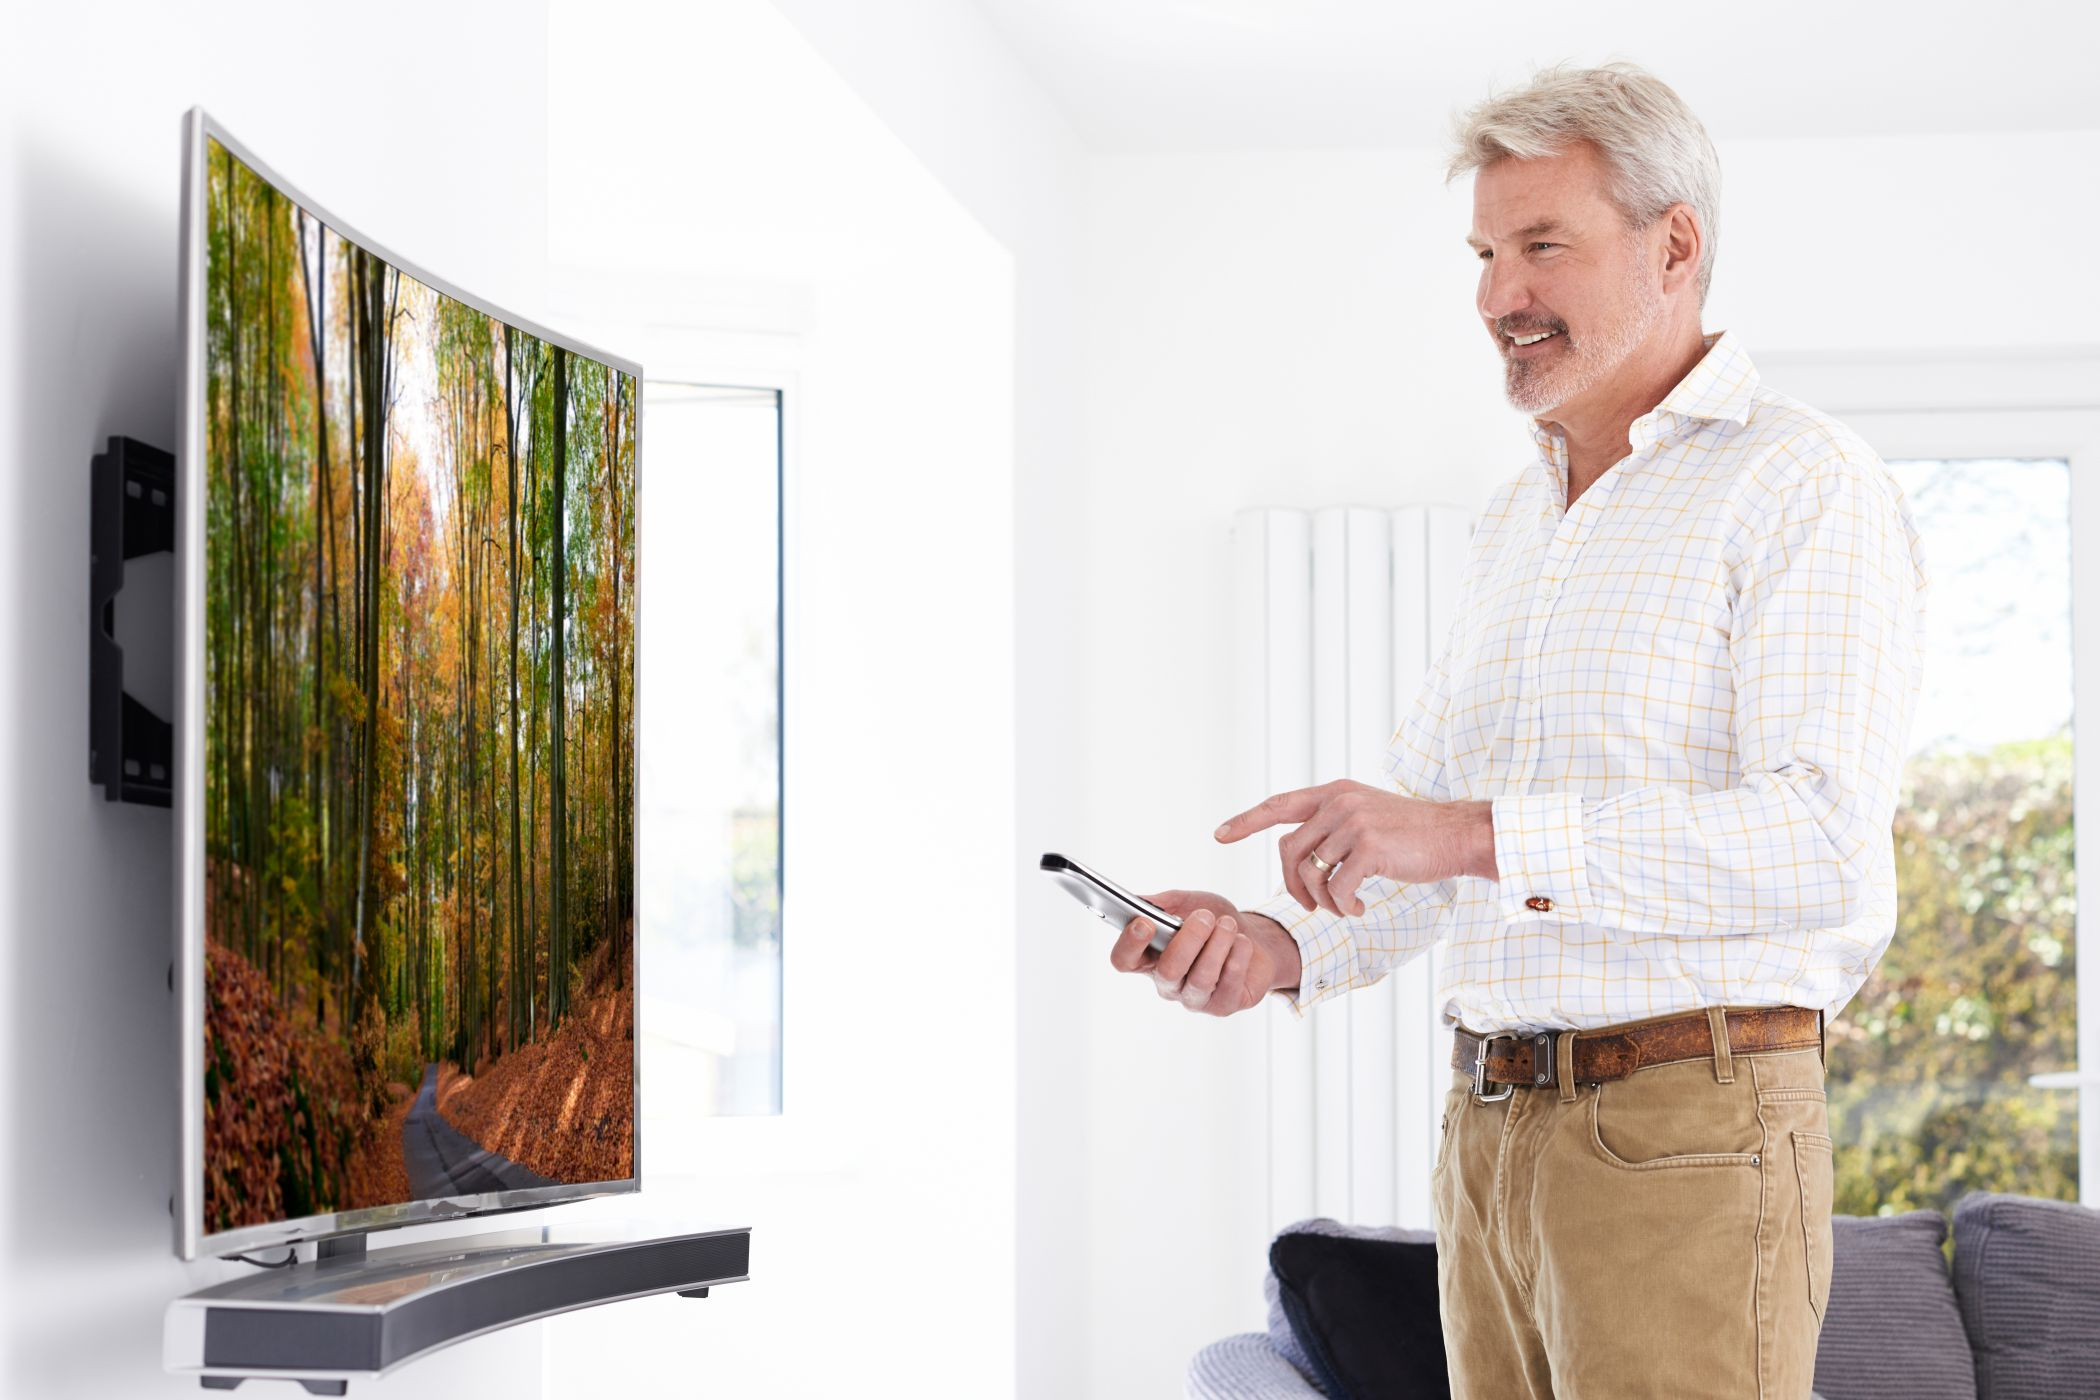 Mature Man With New Curved Screen Television At Home